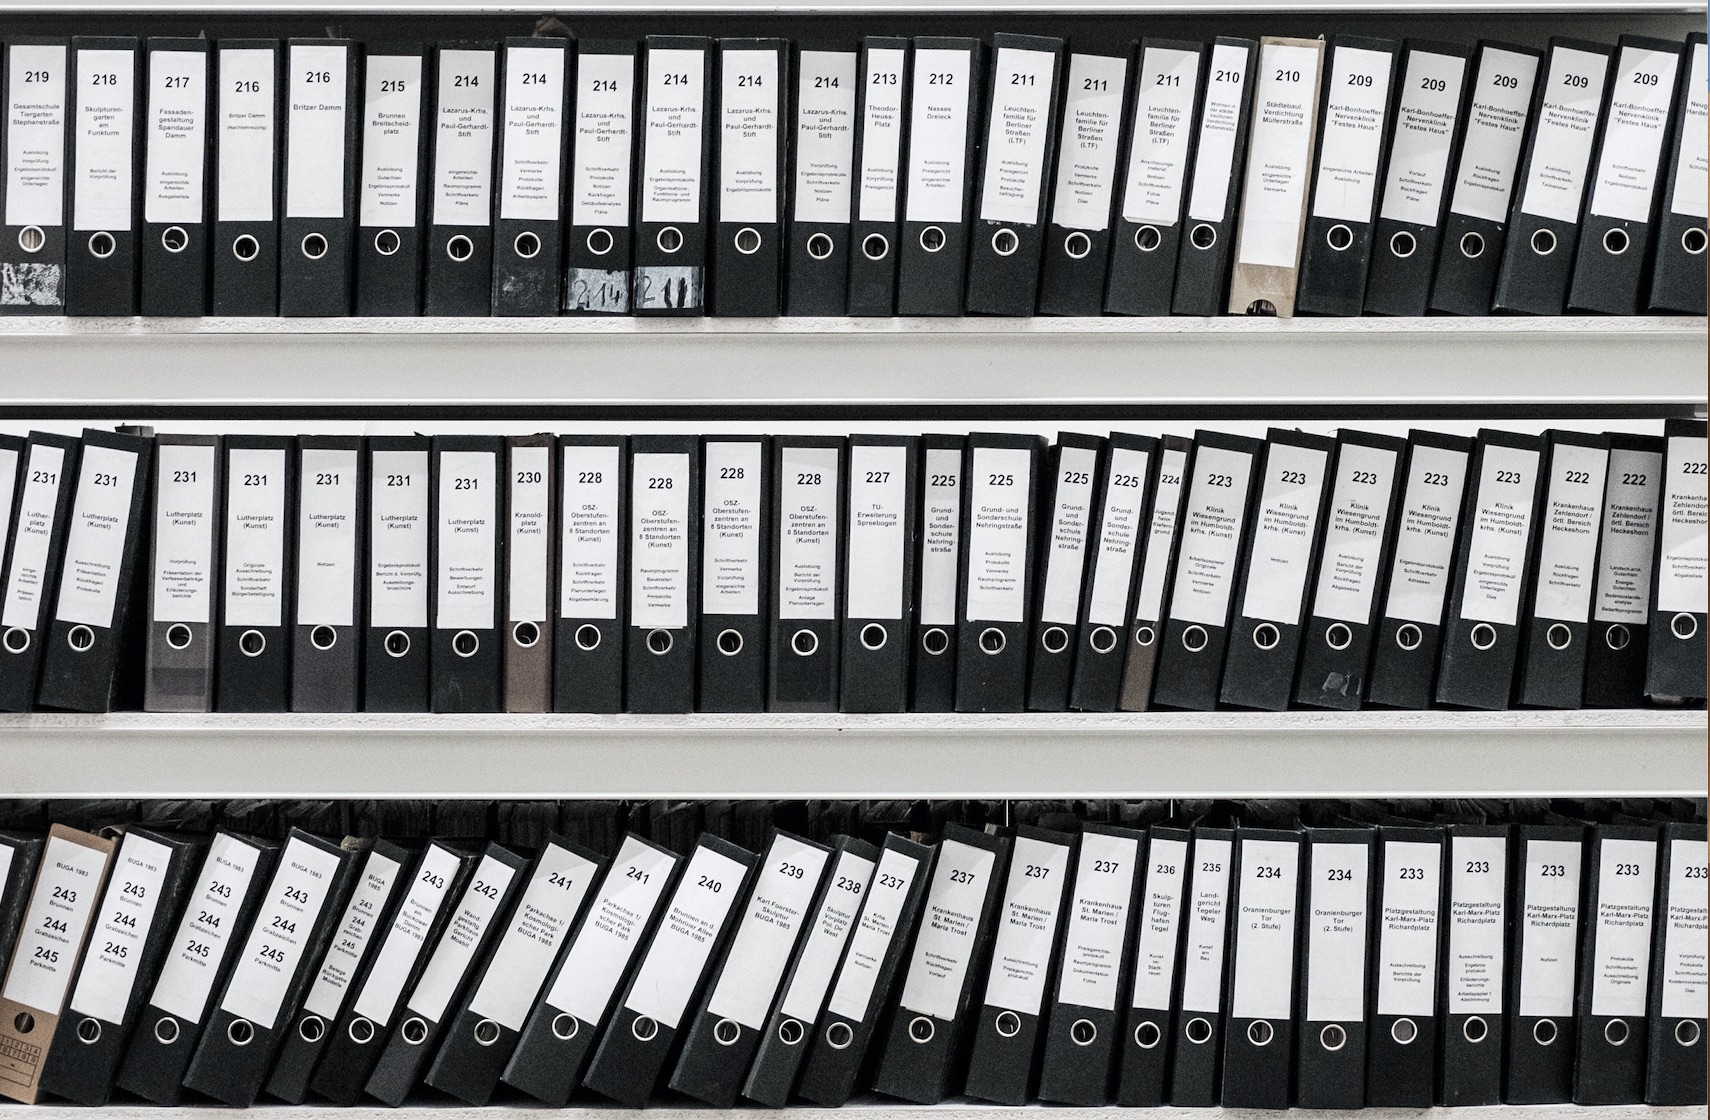 Rows of patient records